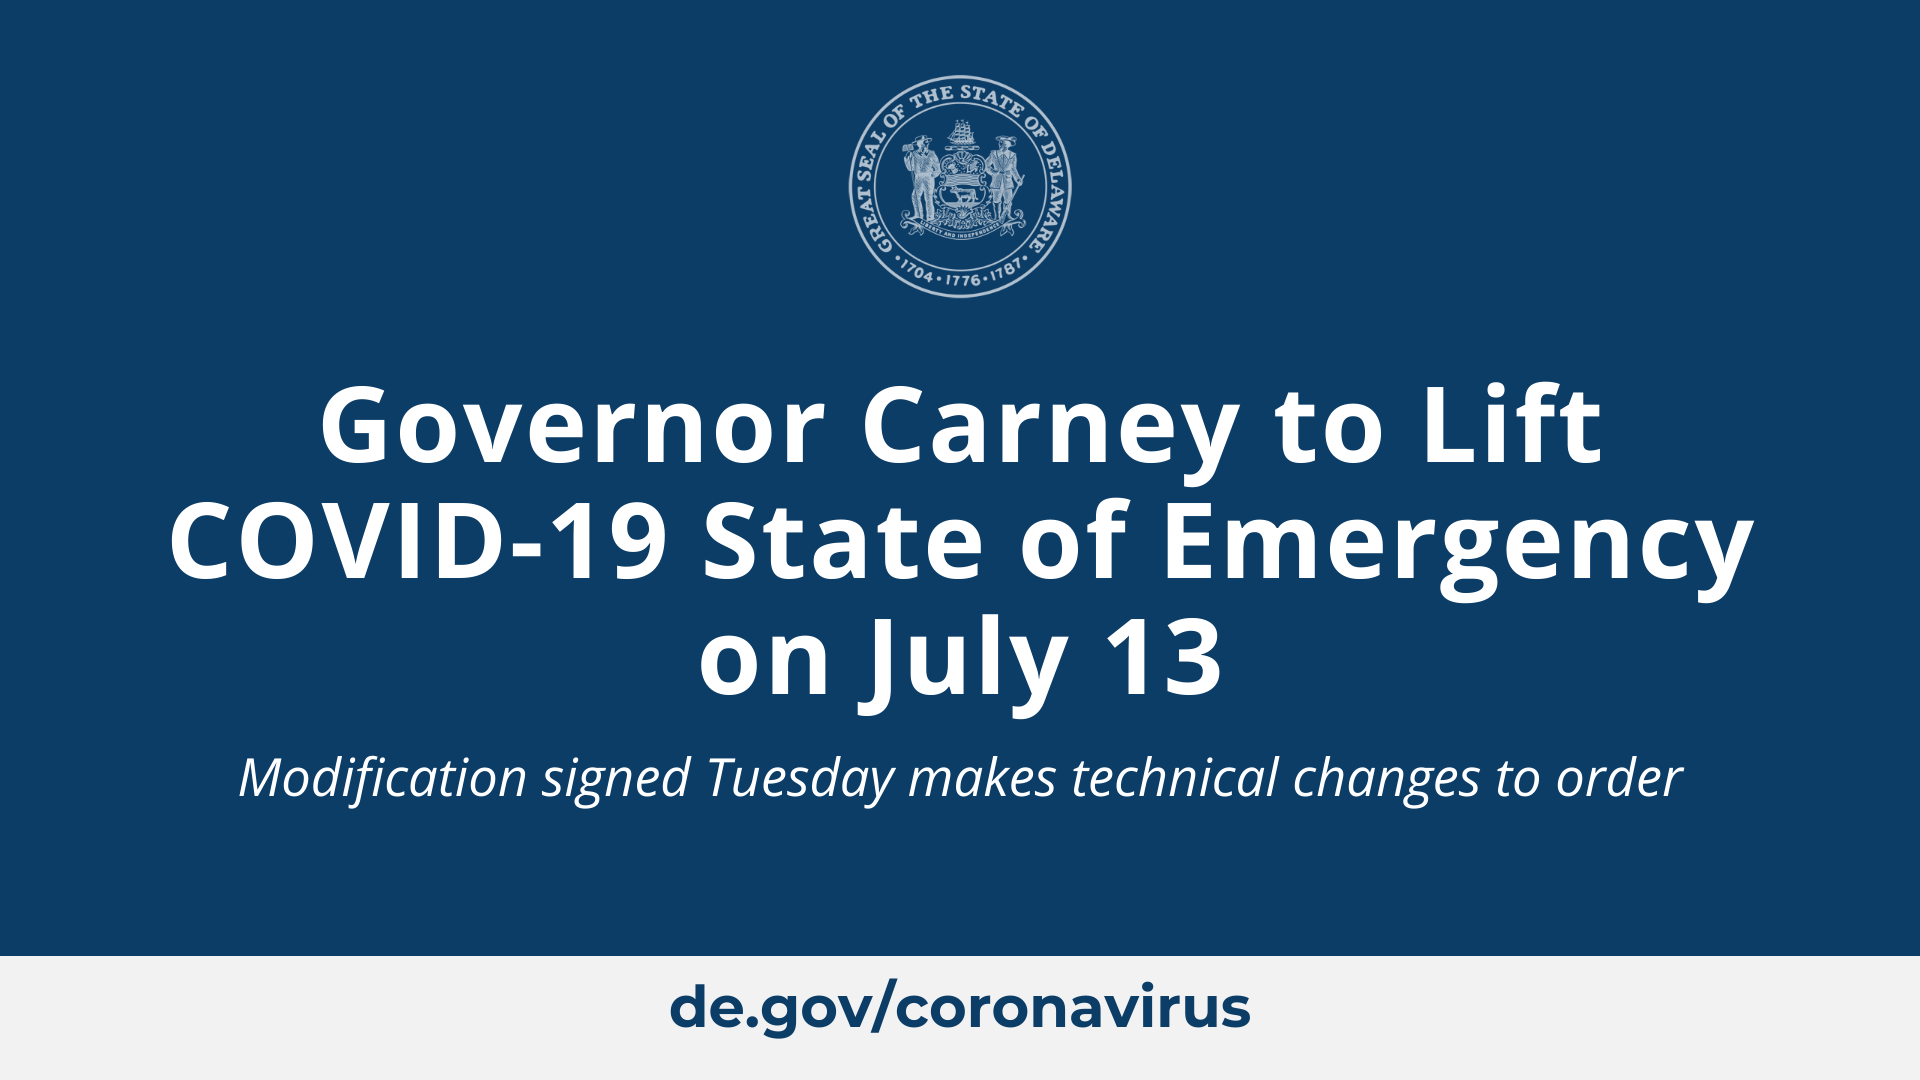 Governor Carney to Lift COVID-19 State of Emergency on July 13 - Modification signed Tuesday makes technical changes to order